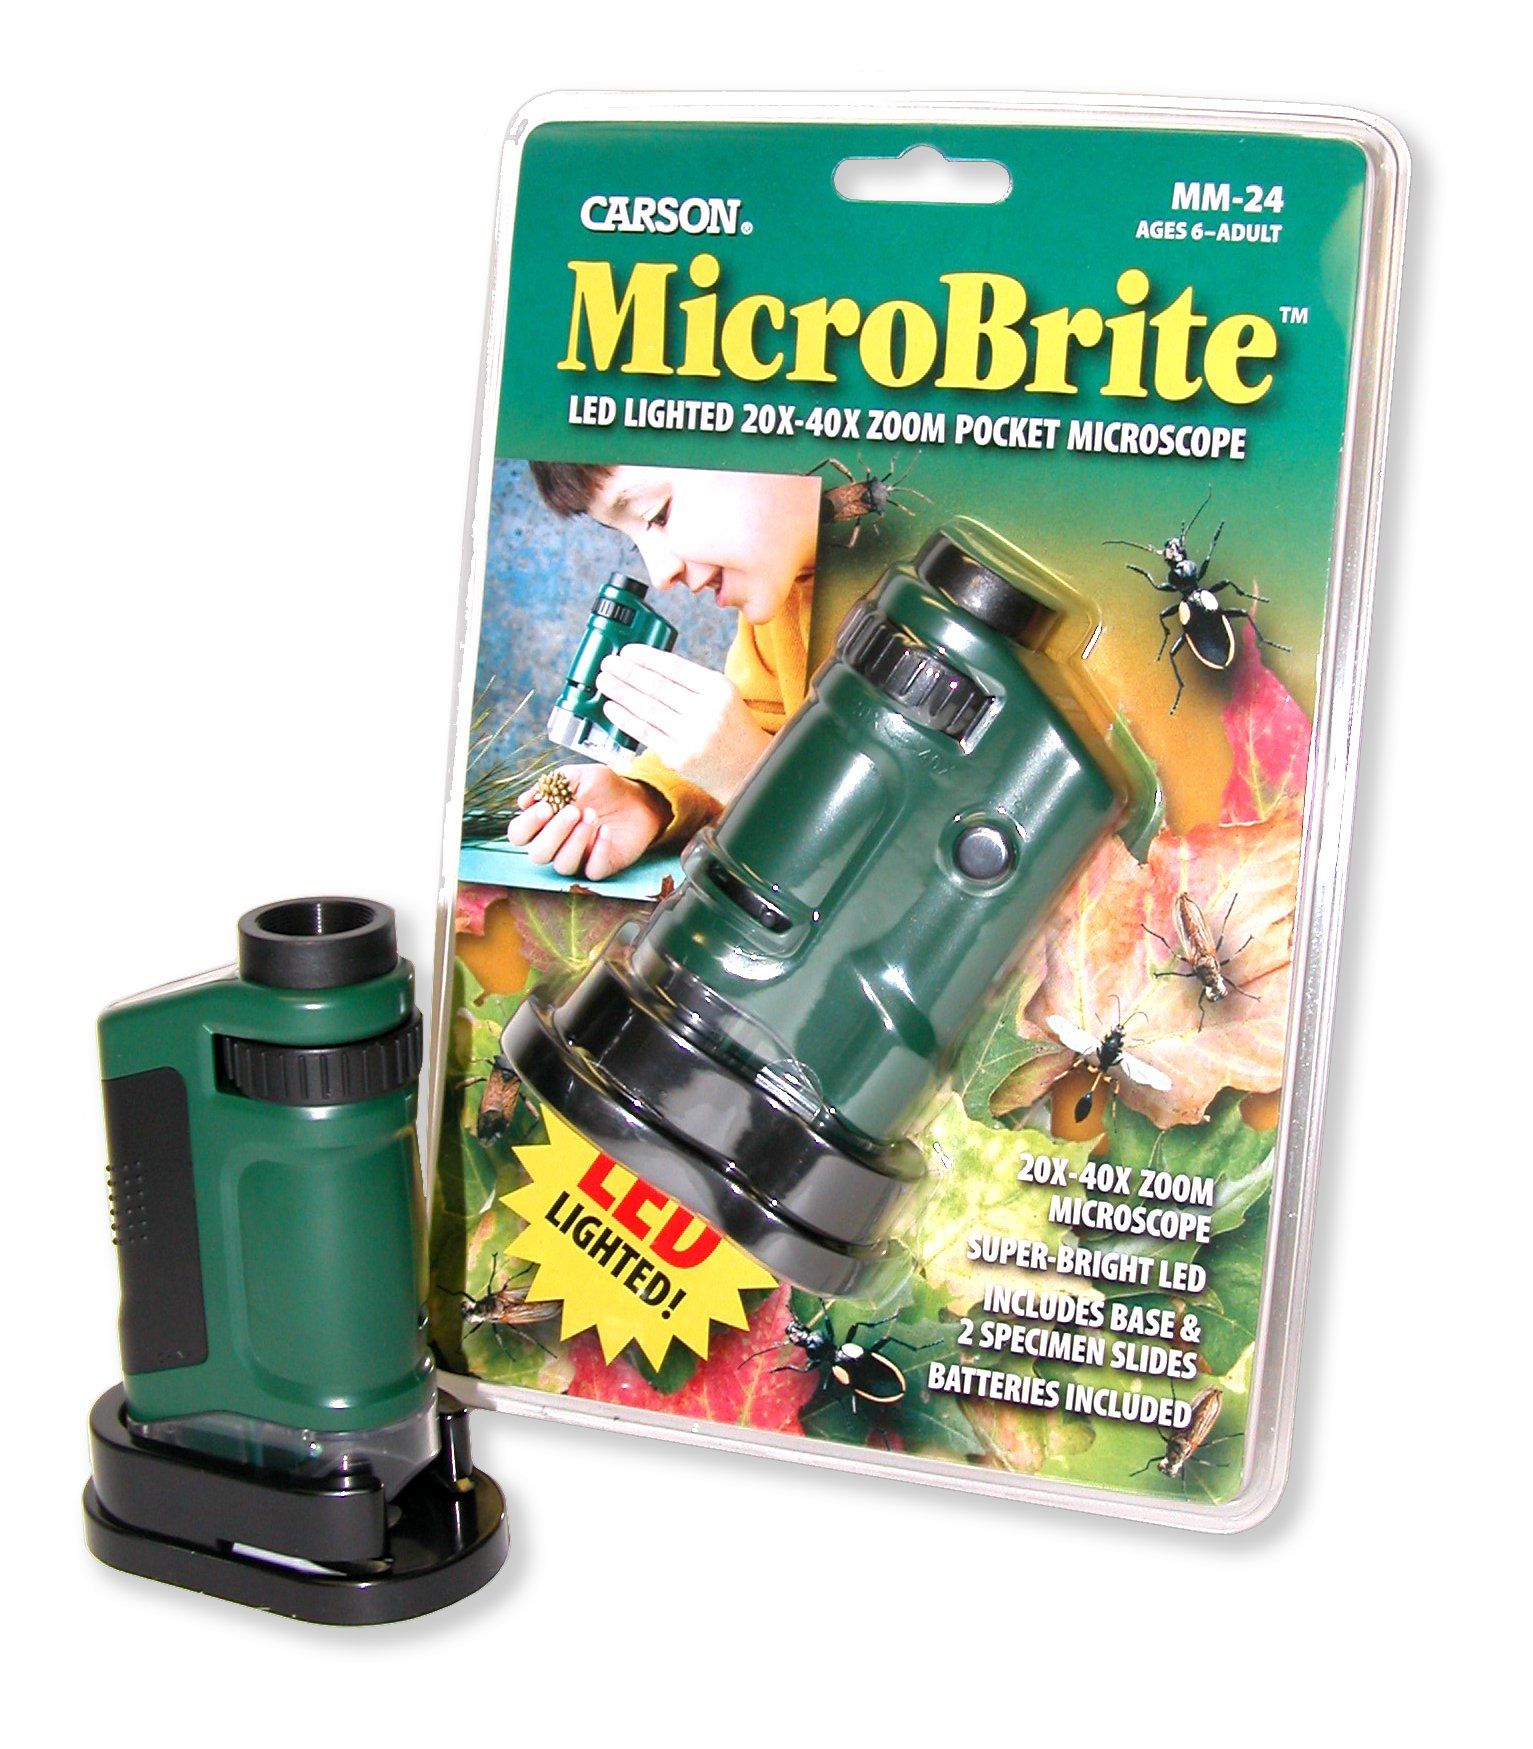 Carson Microbrite LED Lighted 20-40x Pocket Microscope with 2 Slides and Base Stand